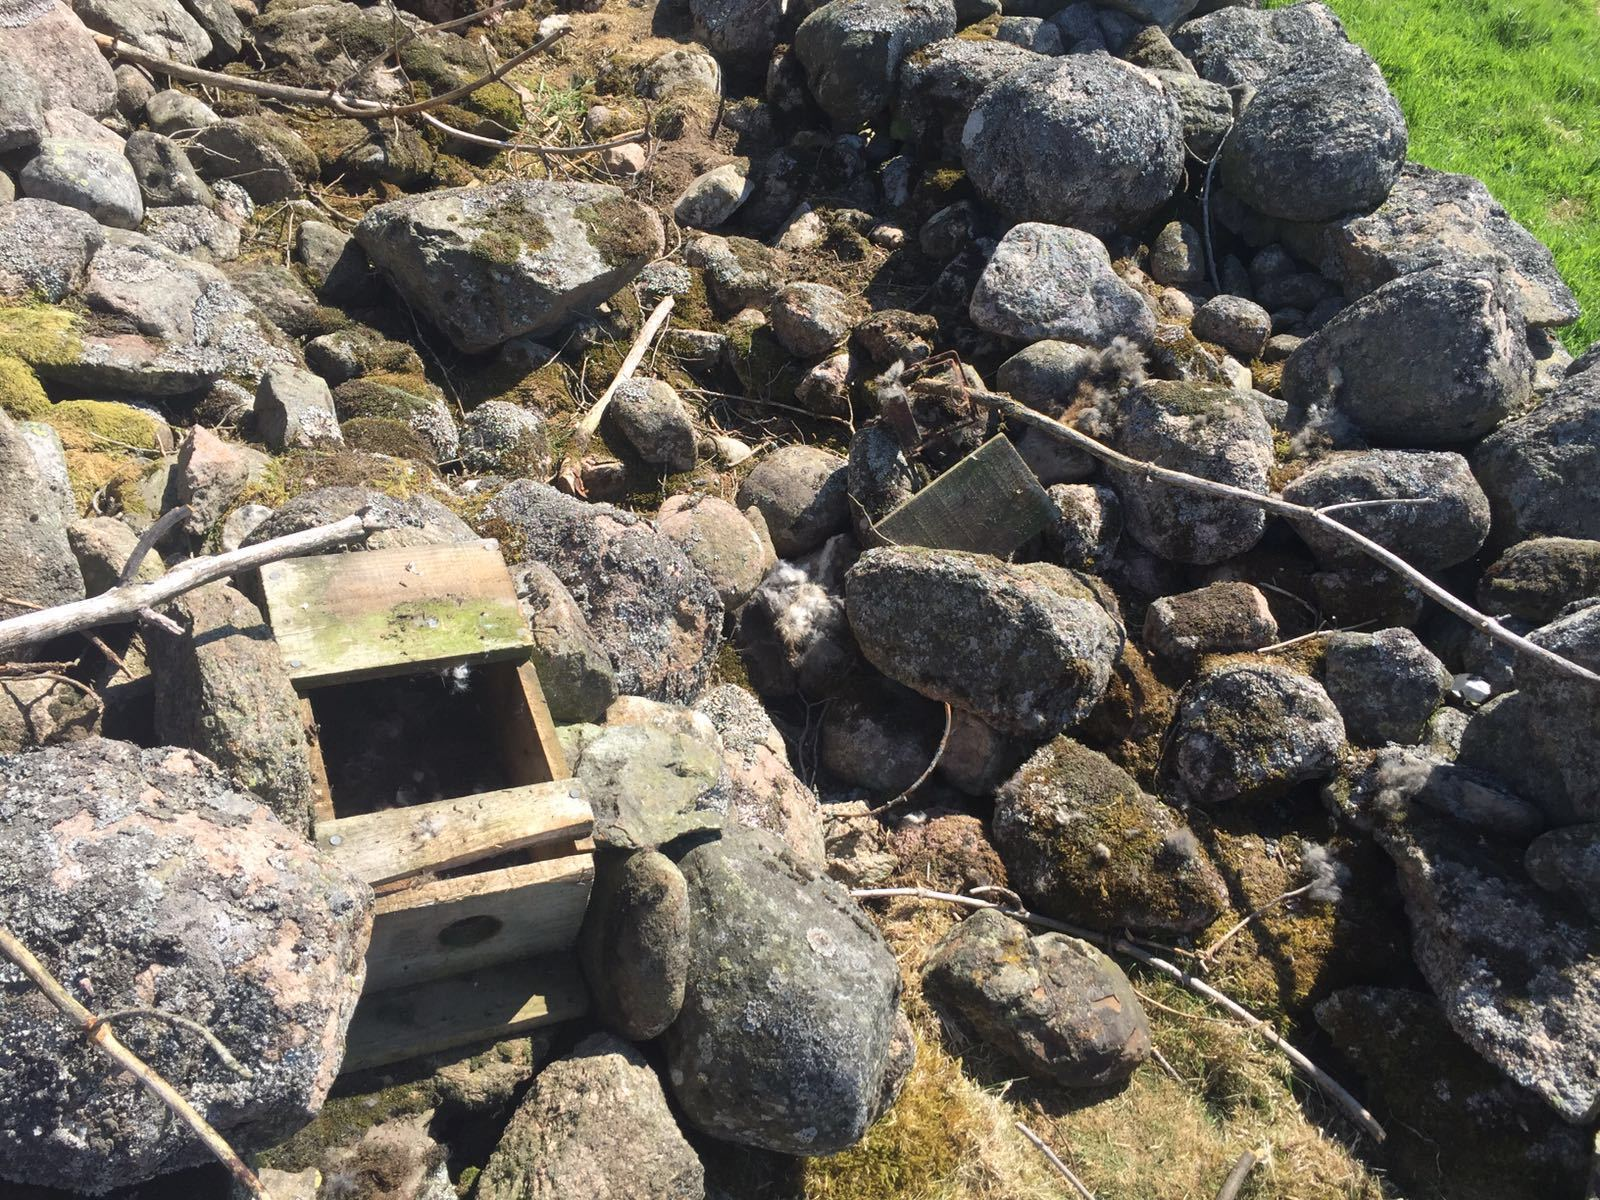 One of the legally-placed traps on a Aboyne grouse shooting estate that was tampered with